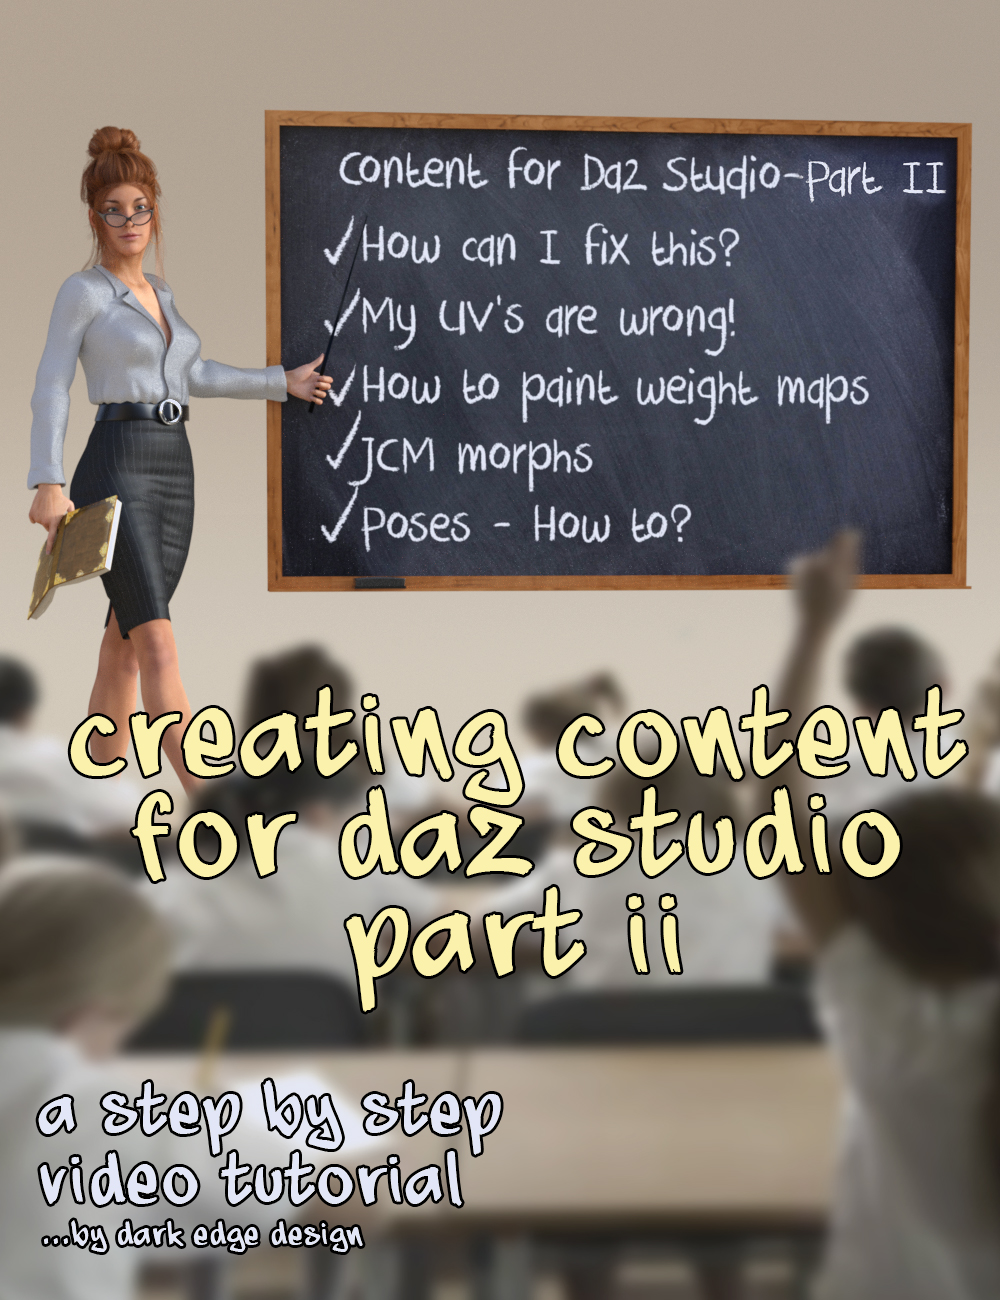 Creating Content for Daz Studio - Part Two by: DarkEdgeDesign, 3D Models by Daz 3D